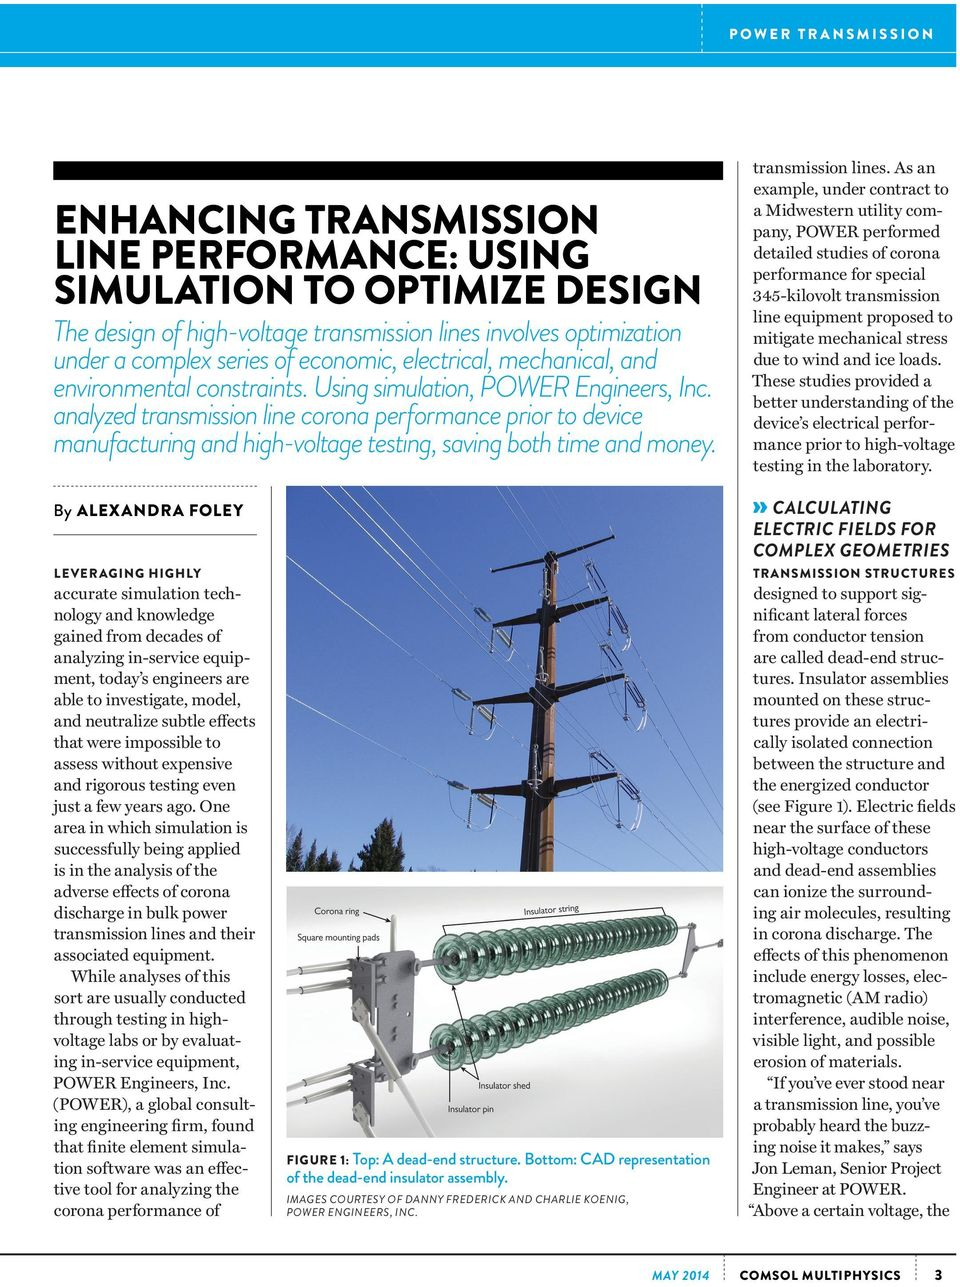 analyzed transmission line corona performance prior to device manufacturing and high-voltage testing, saving both time and money. transmission lines.